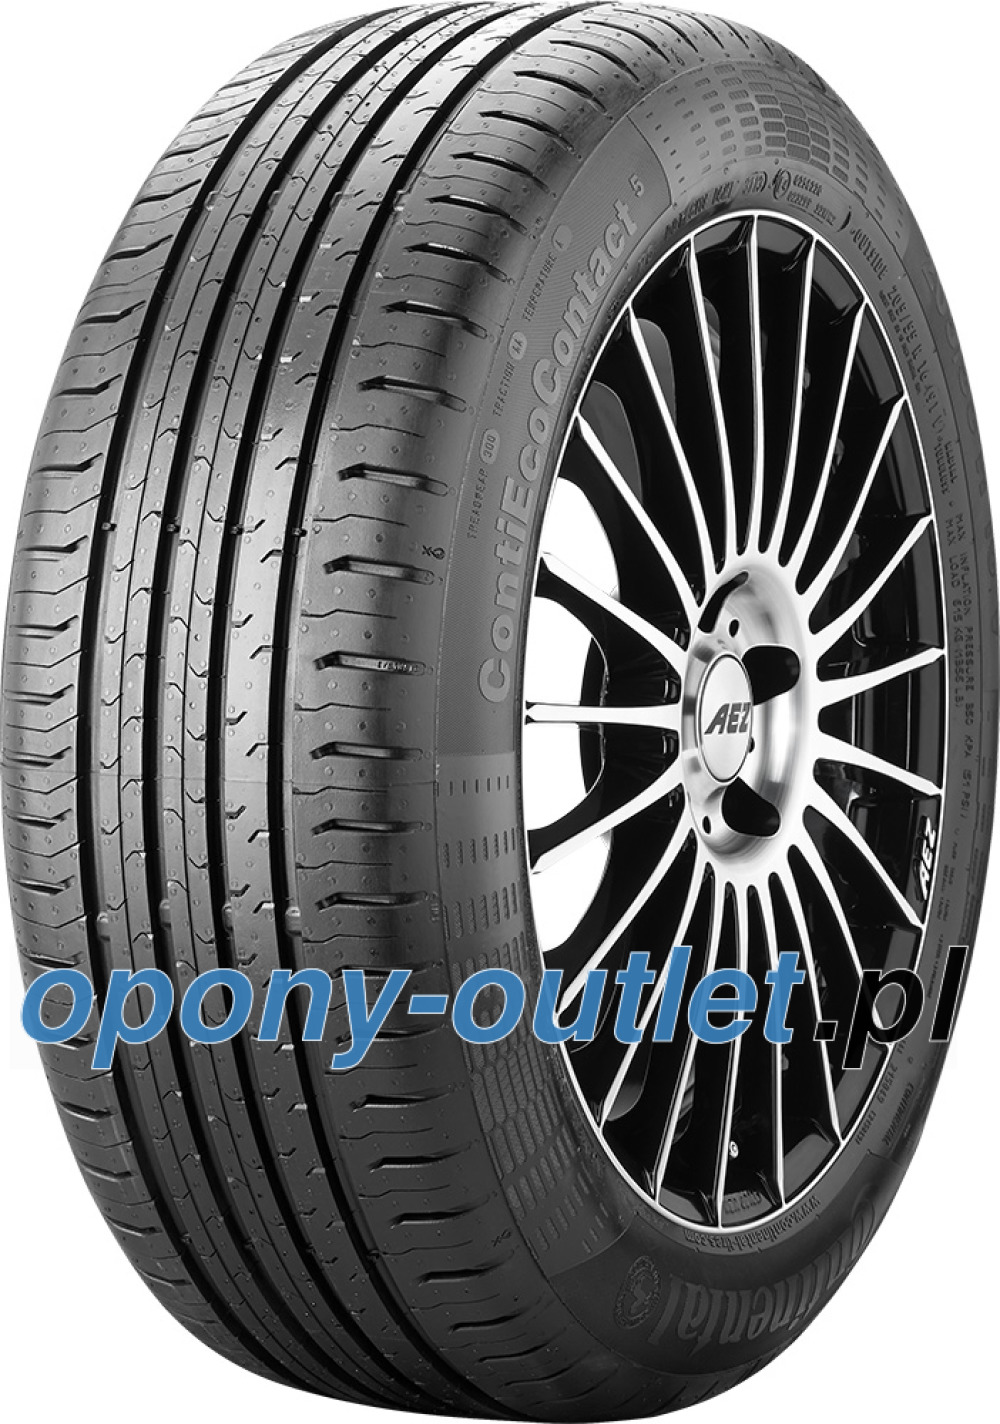 Continental EcoContact 5 ( 195/65 R15 95H XL )